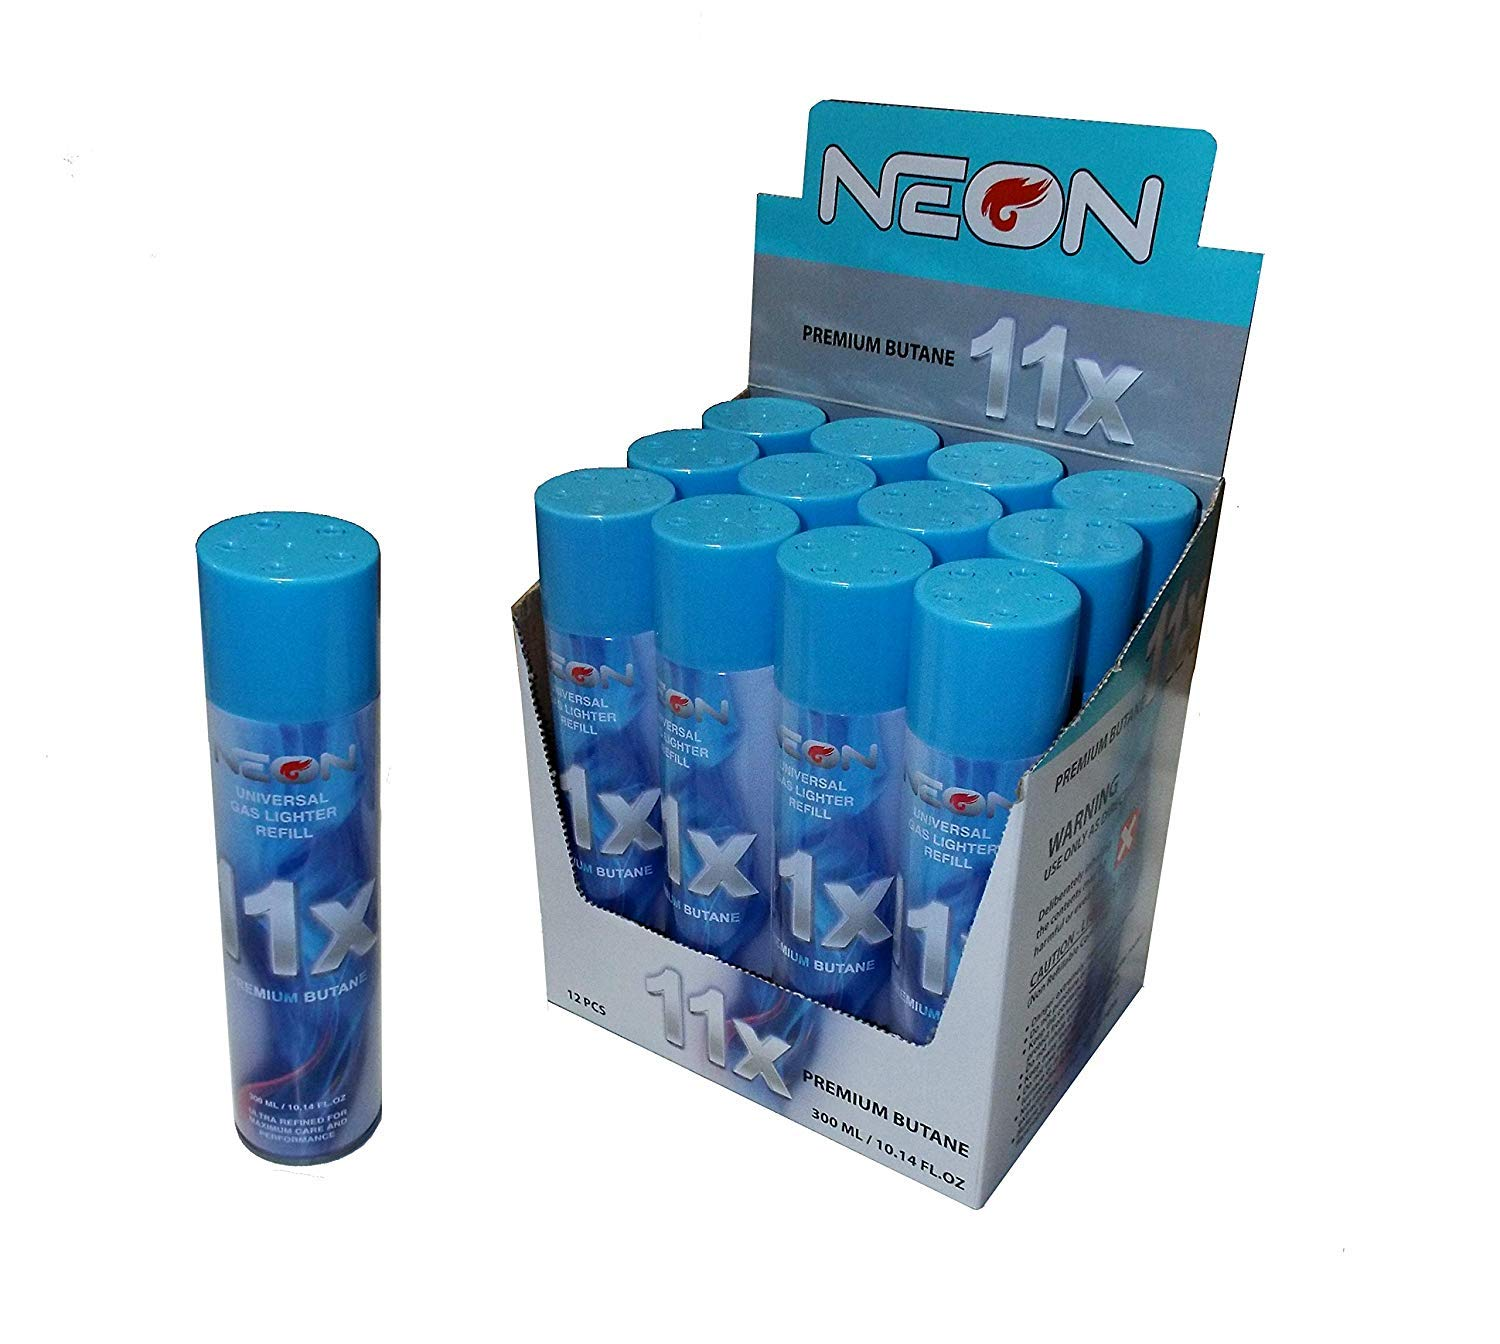 Neon 11x Ultra Refined Butane Fuel Lighter Refill Gas (4 Pack) by Neon